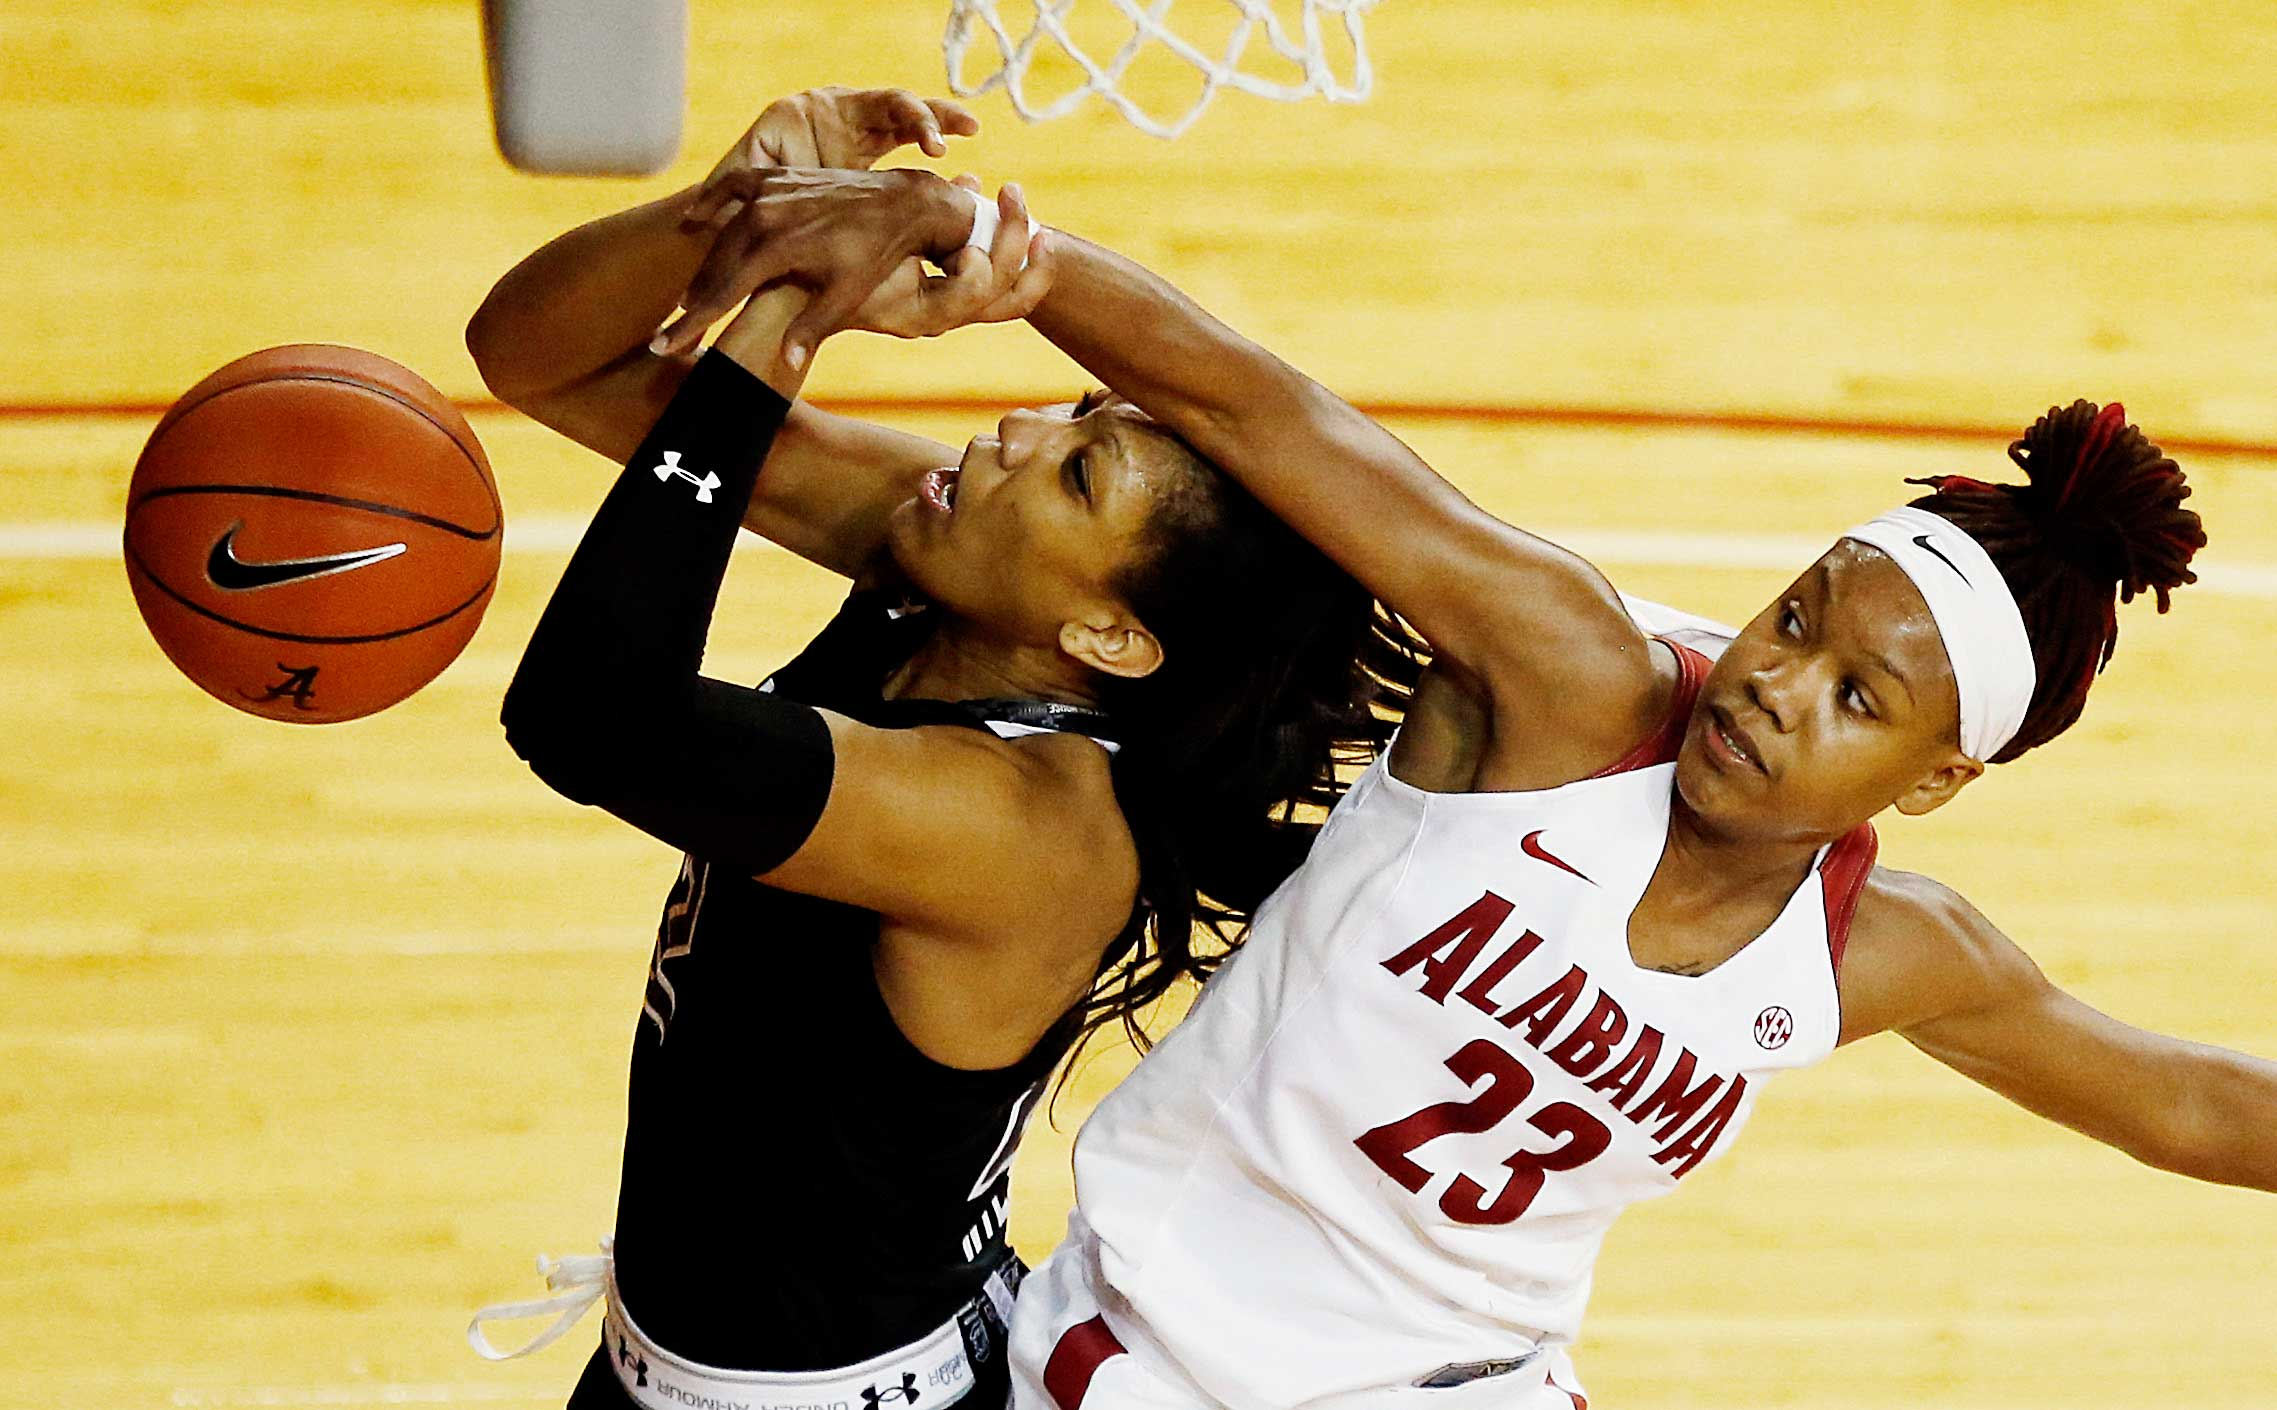 Alabama guard Shaquera Wade fouls South Carolina forward A'ja Wilson.